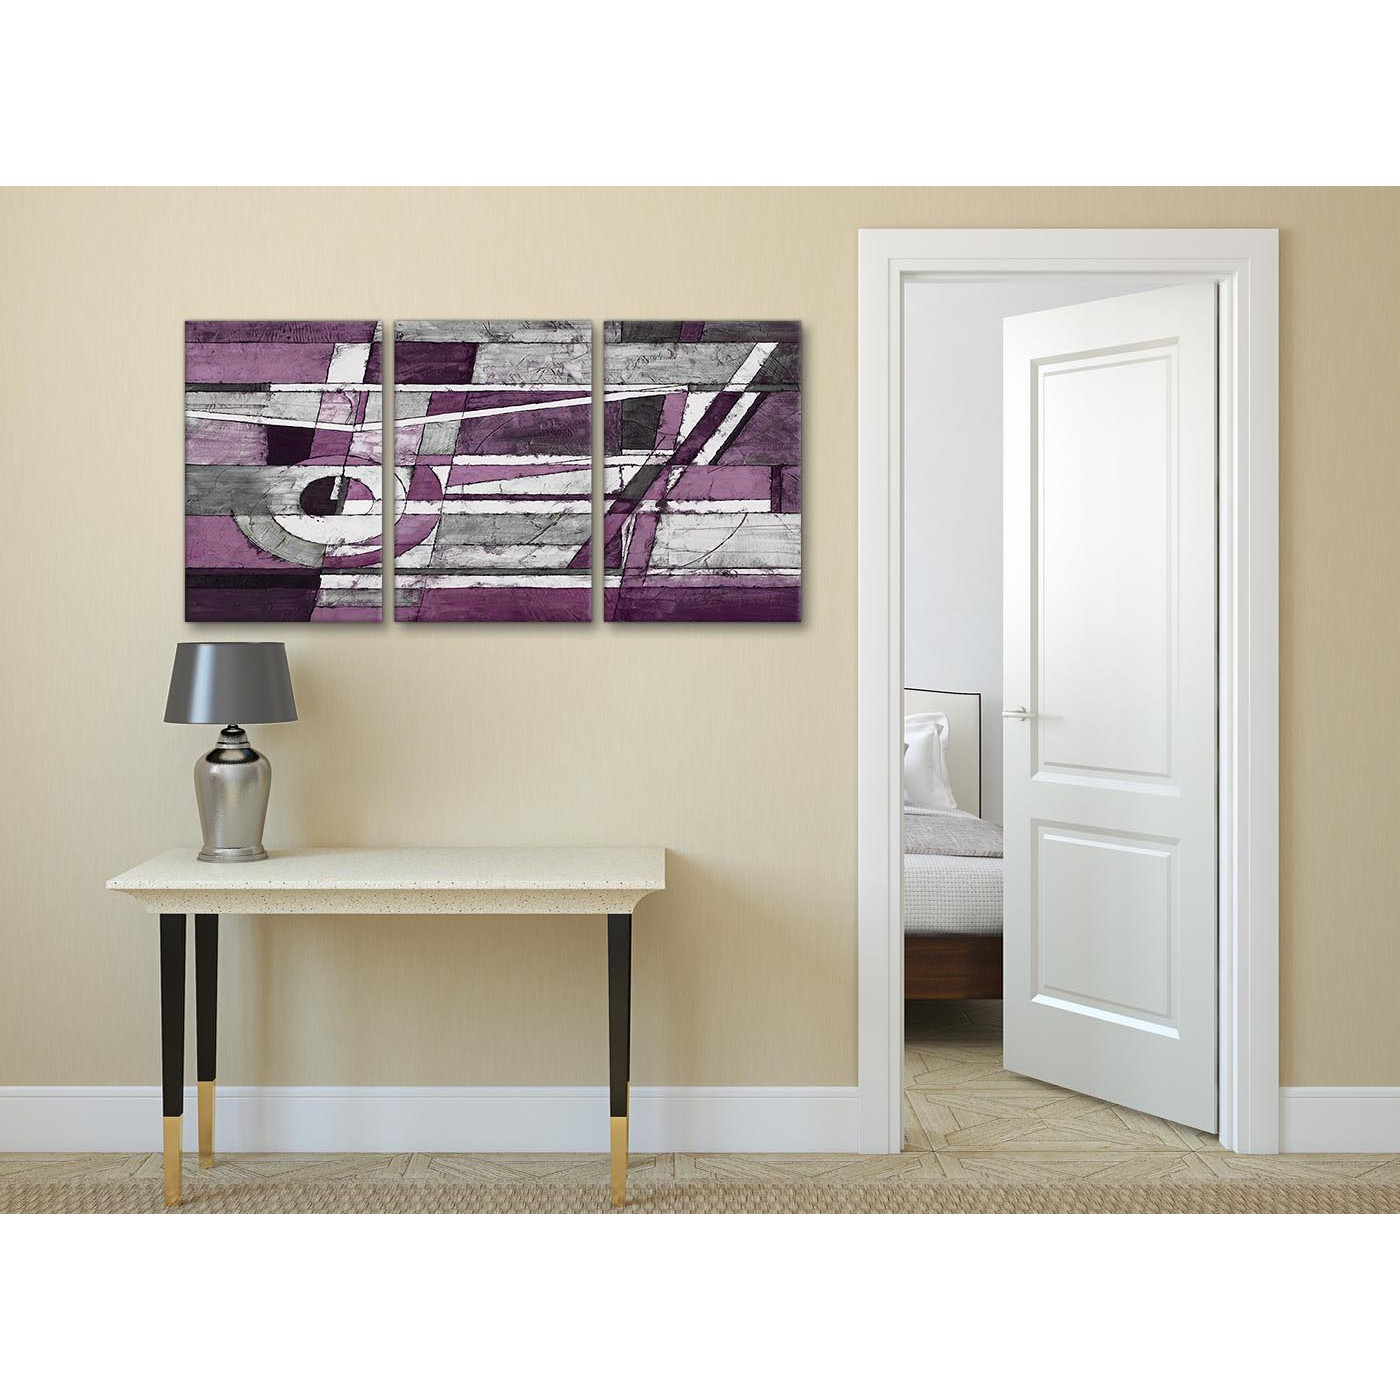 Purple Eggplant Aubergine Kitchen Wall Decor Poster: 3 Panel Aubergine Grey White Painting Dining Room Canvas